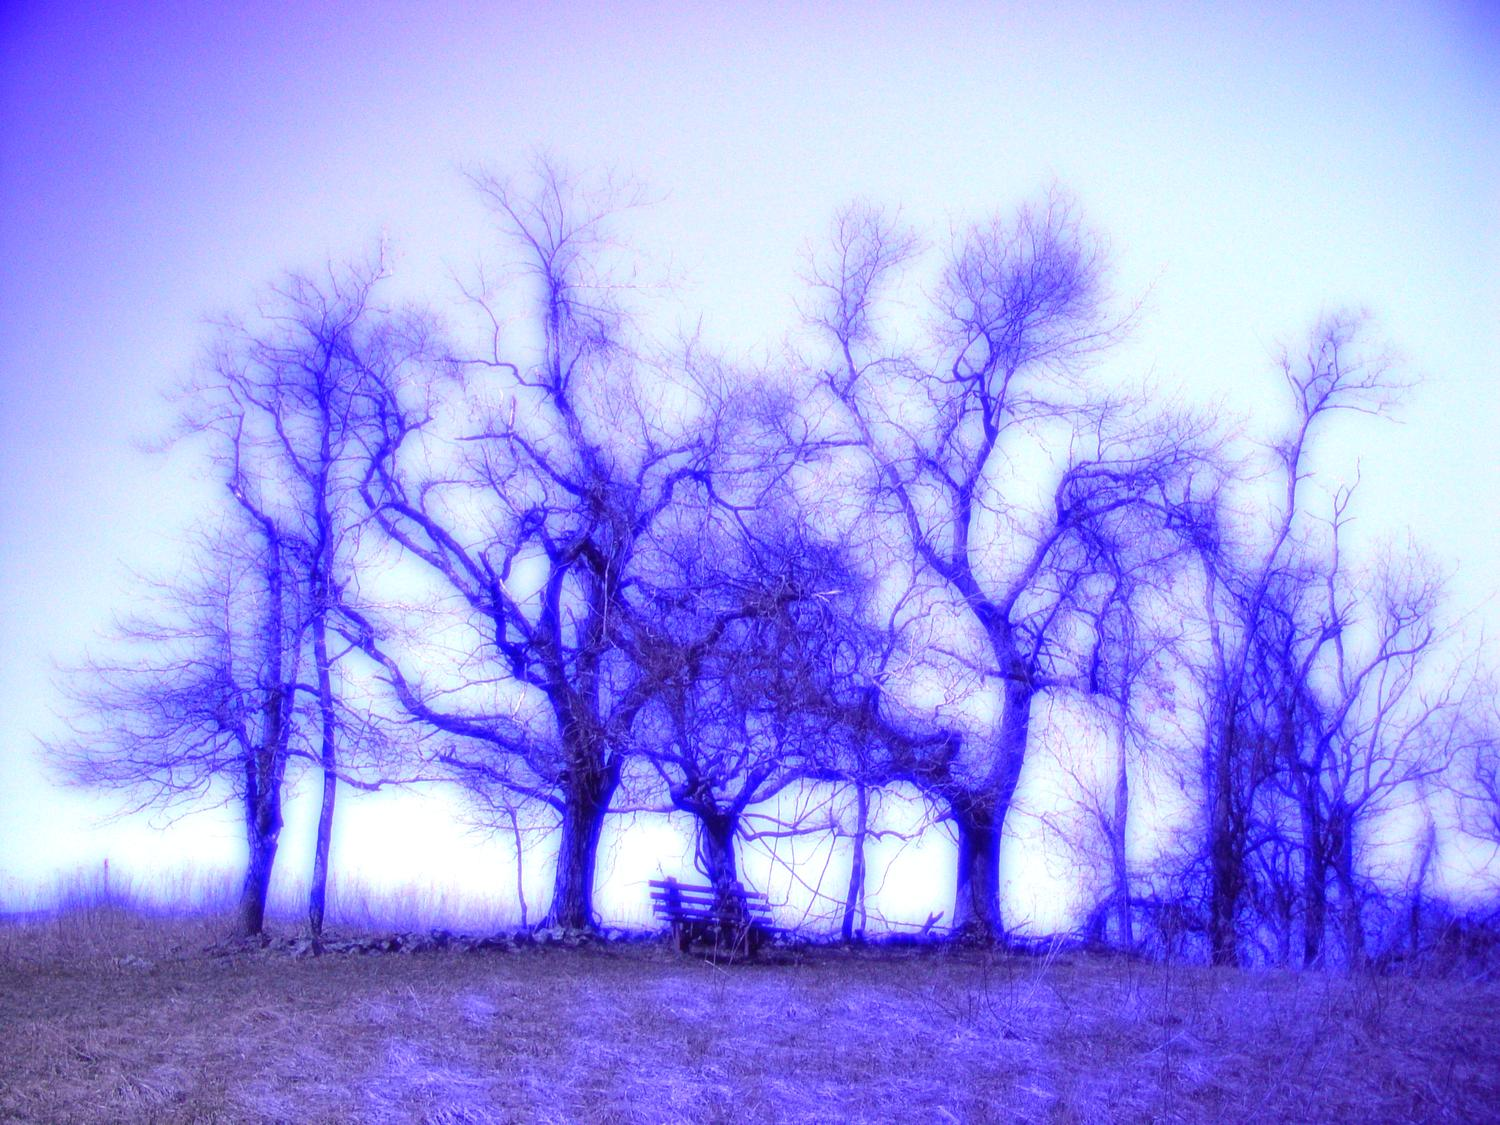 - Dancing trees - Techno-Impressionist Museum - Techno-Impressionism - art - beautiful - photo photography picture - by Tony Karp